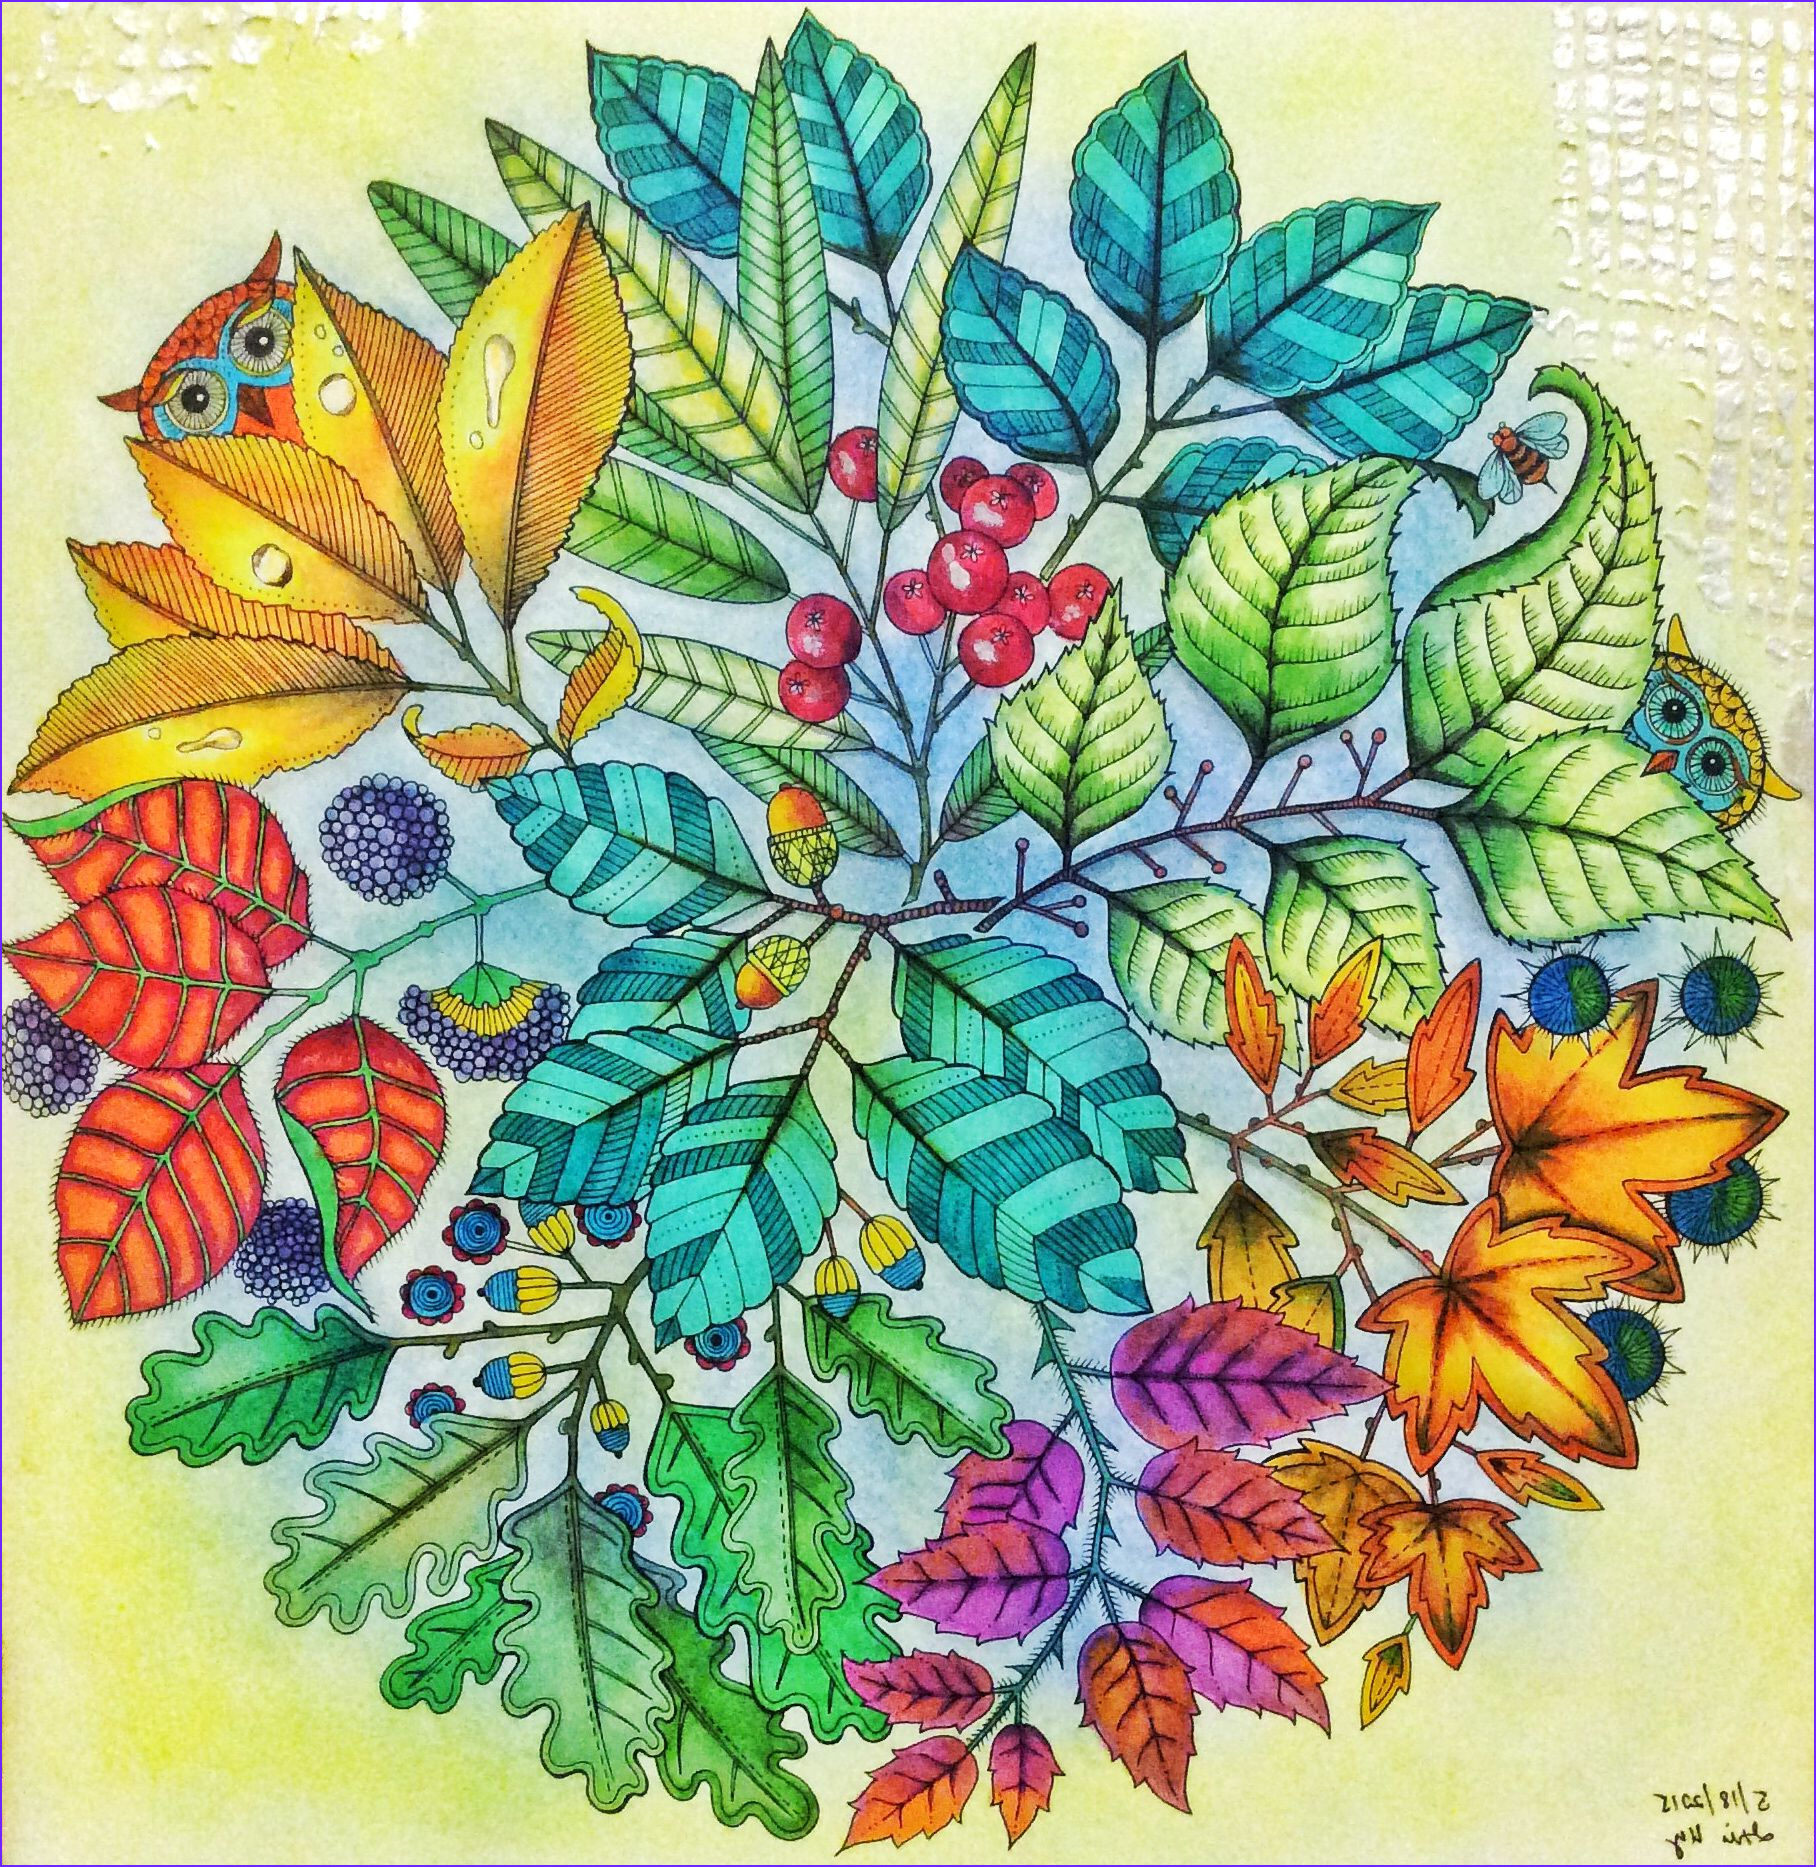 Magical Garden Coloring Book New Gallery From Secret Garden Coloring Book Used soft Pastels and